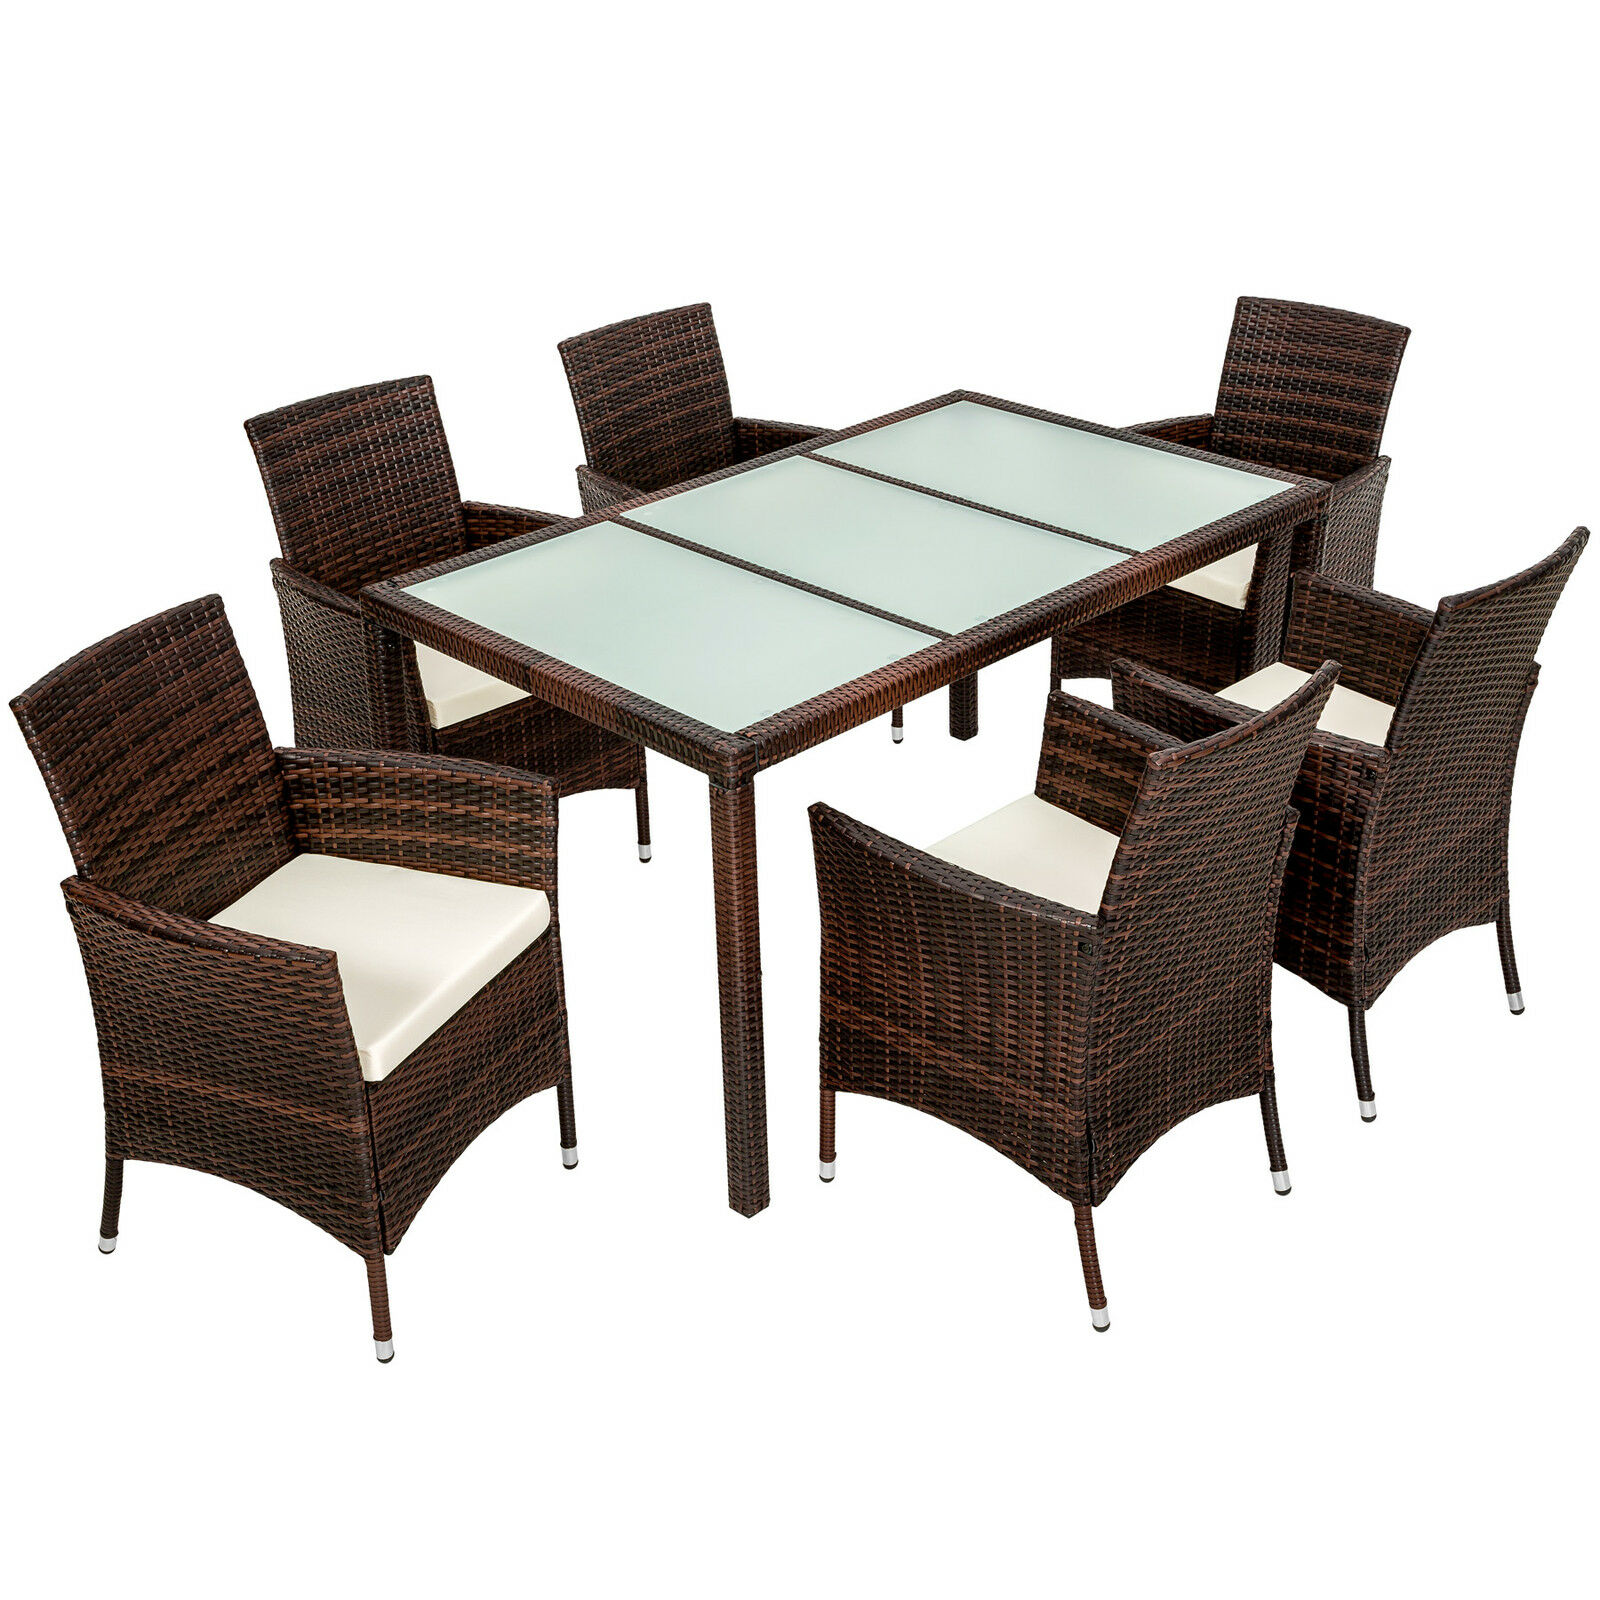 6 seater rattan garden furniture dining set chairs table for Rattan garden furniture